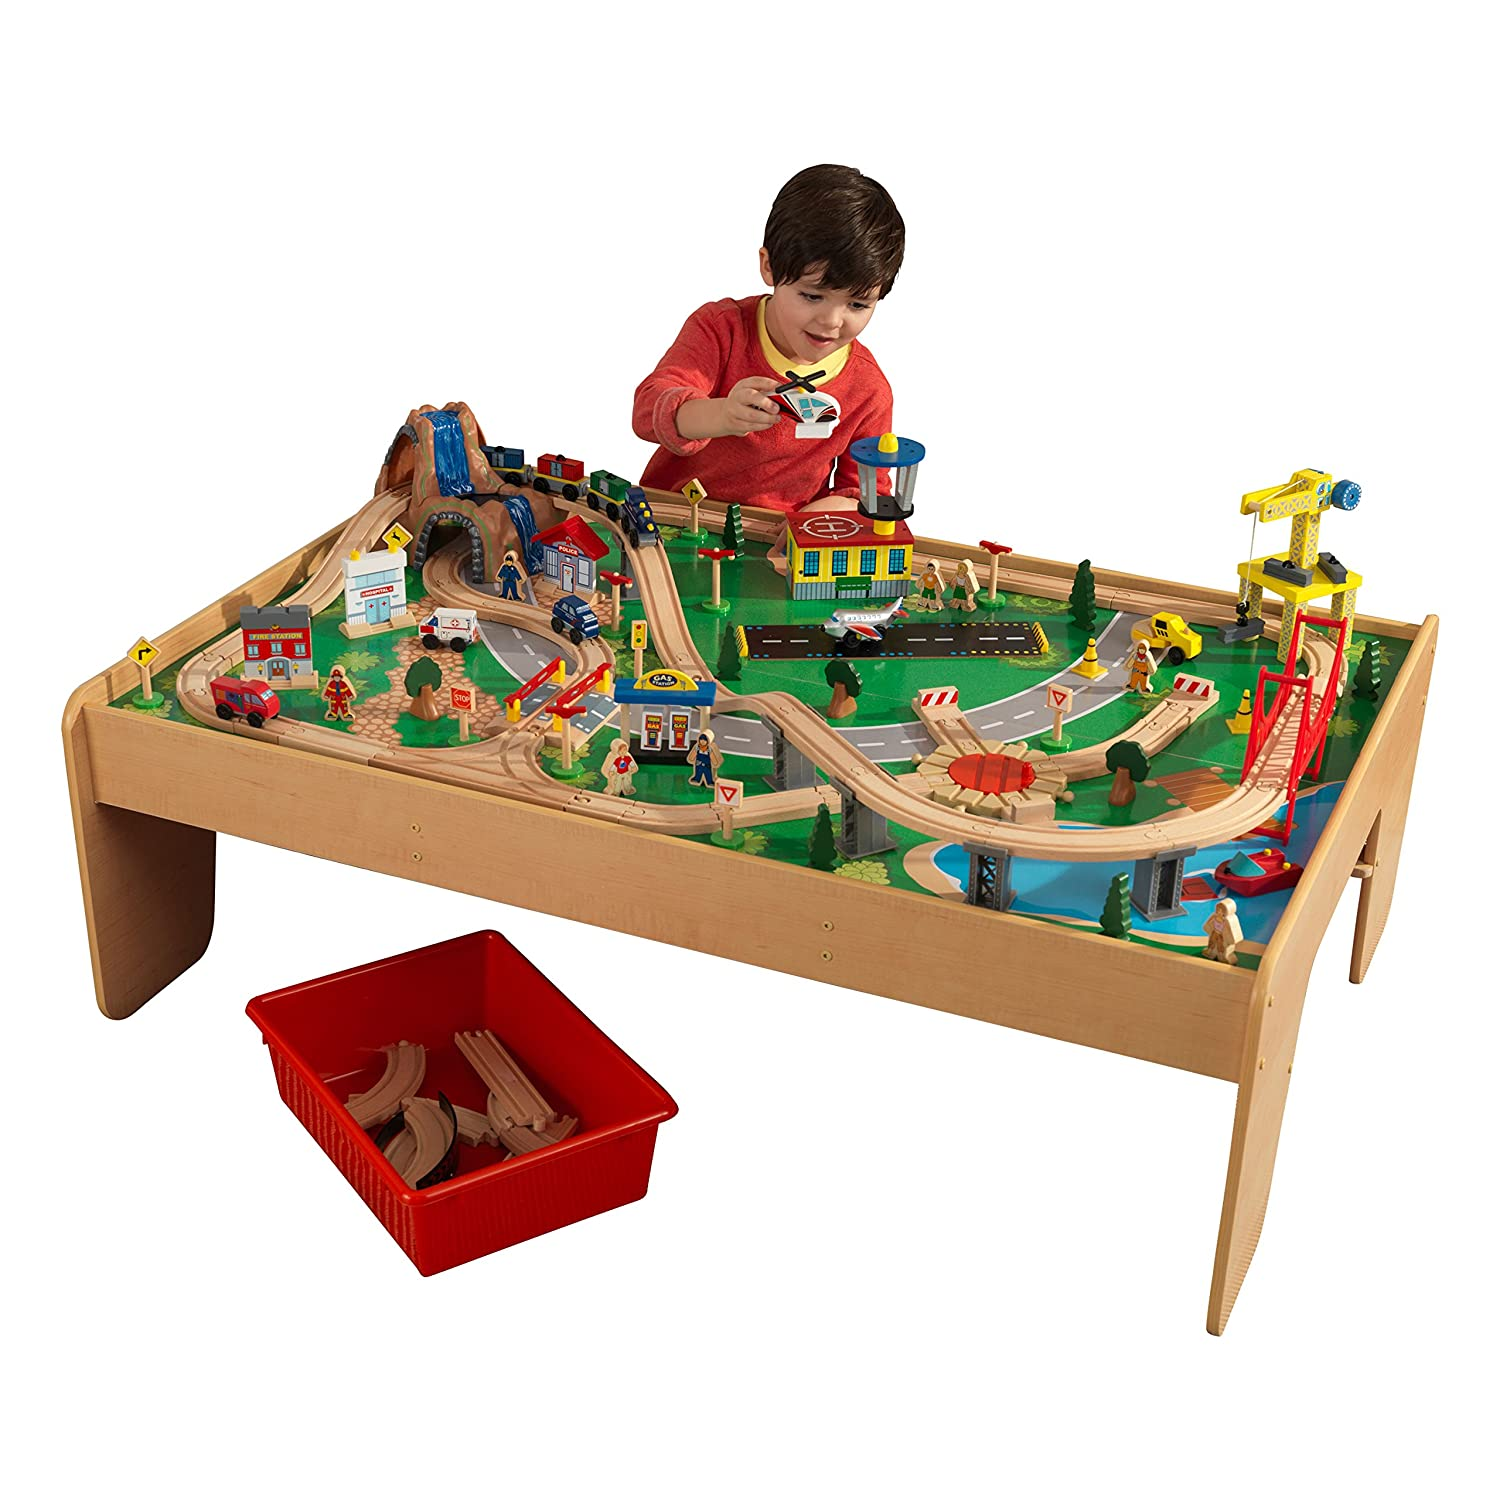 Top 9 Best Train Sets for Toddlers (2019 Reviews) 7